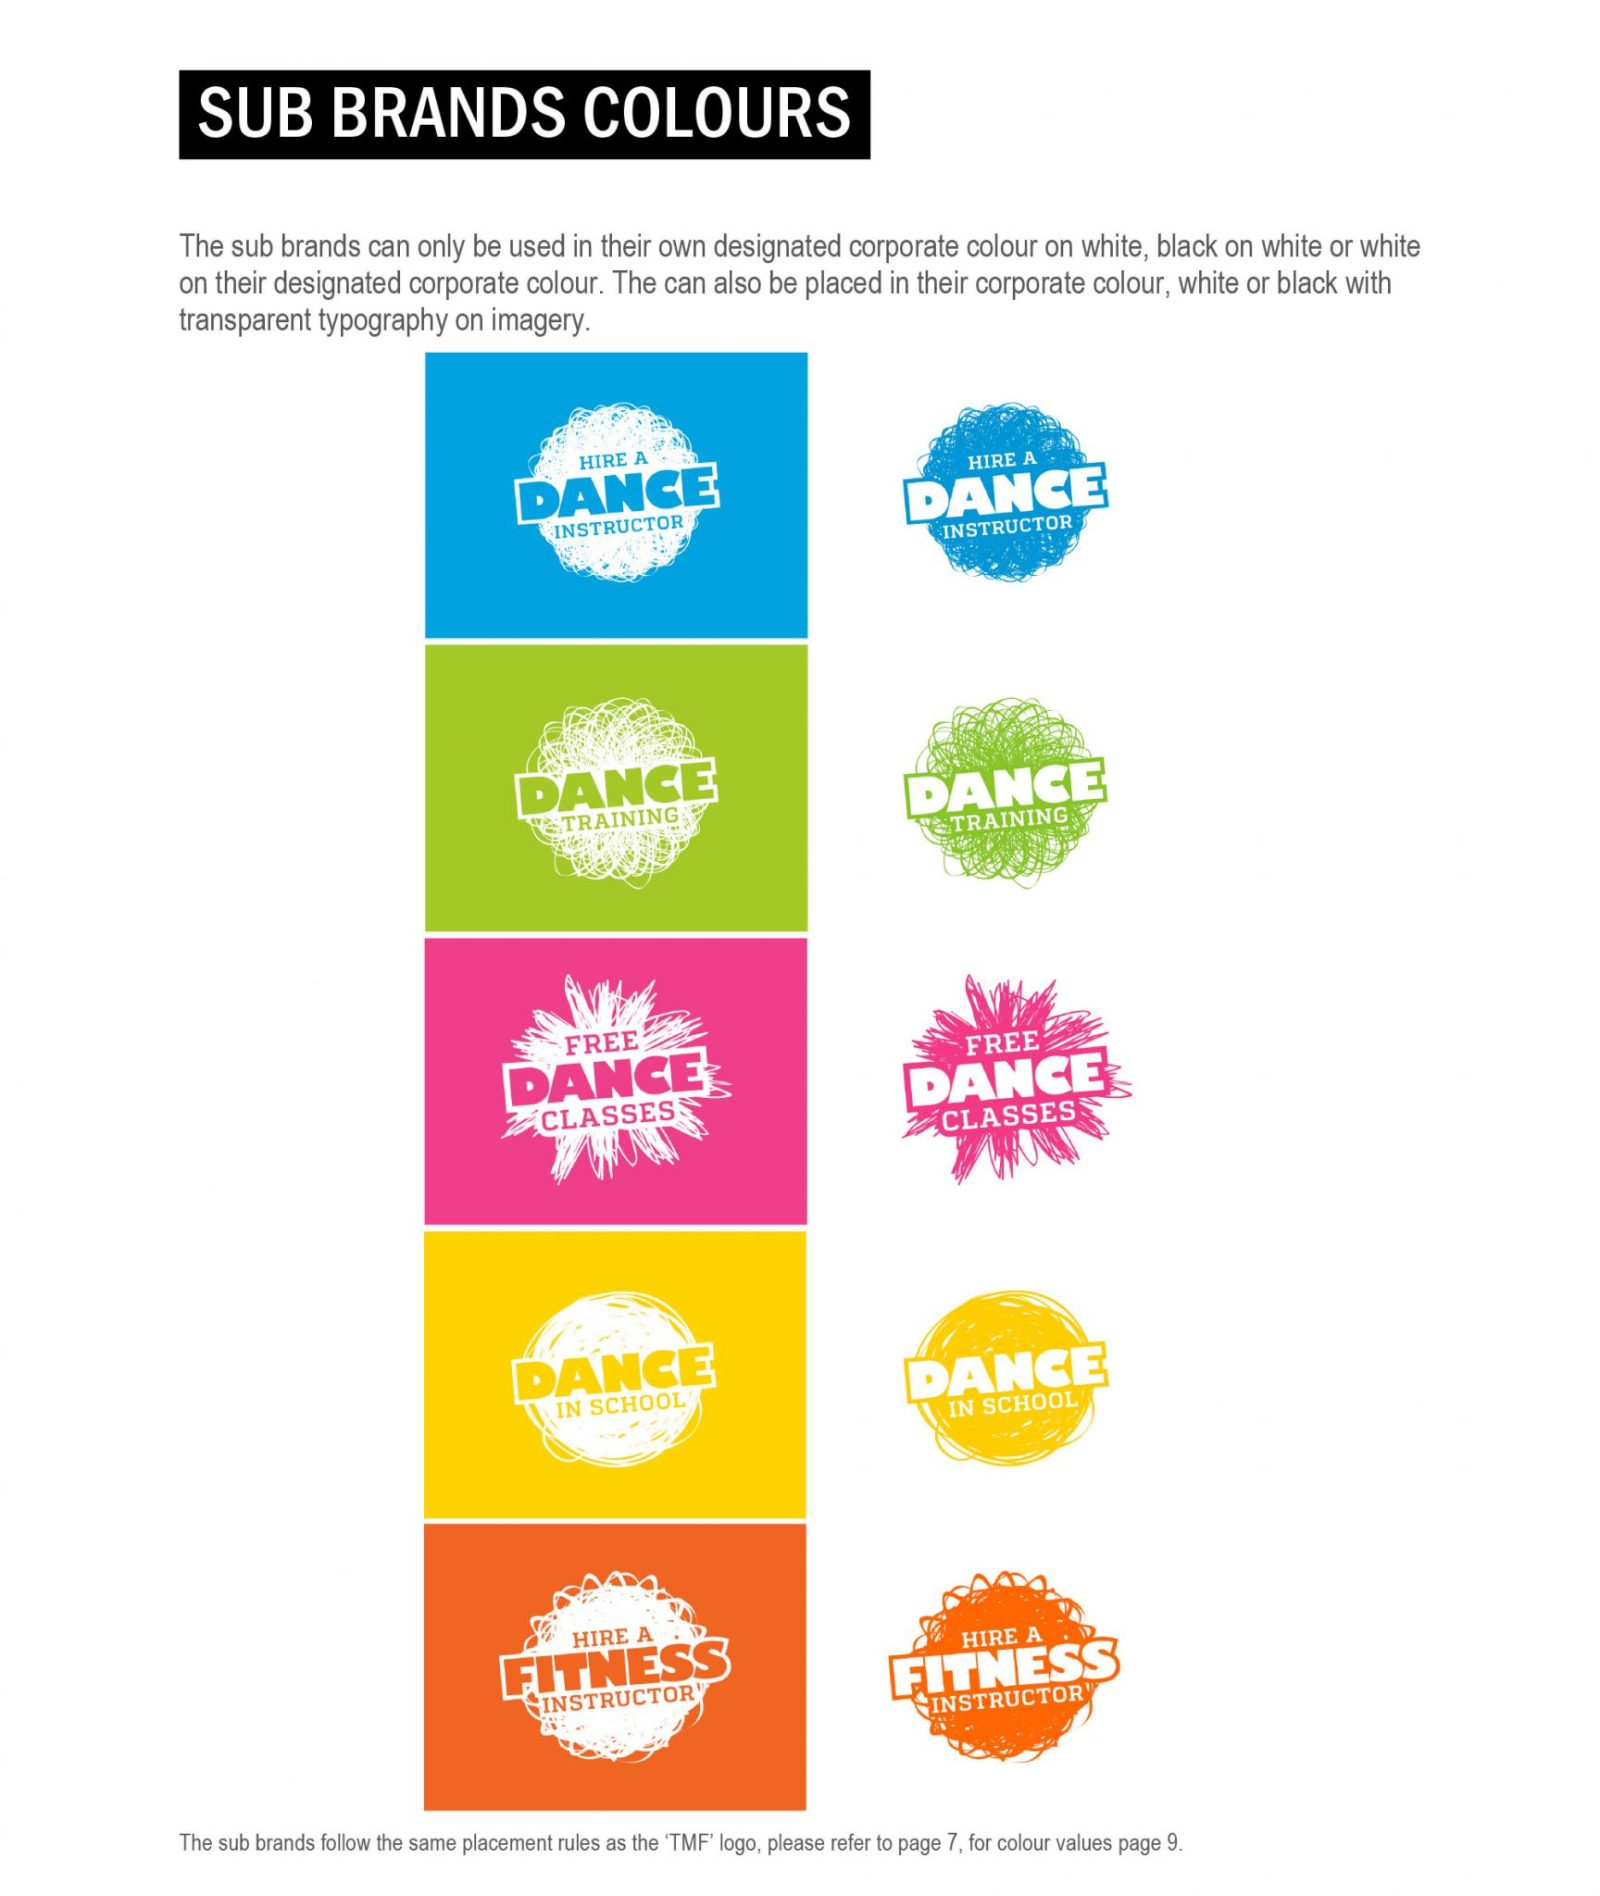 TMF-BrandGuideliness_0003_TMF BRAND GUIDELINES-final